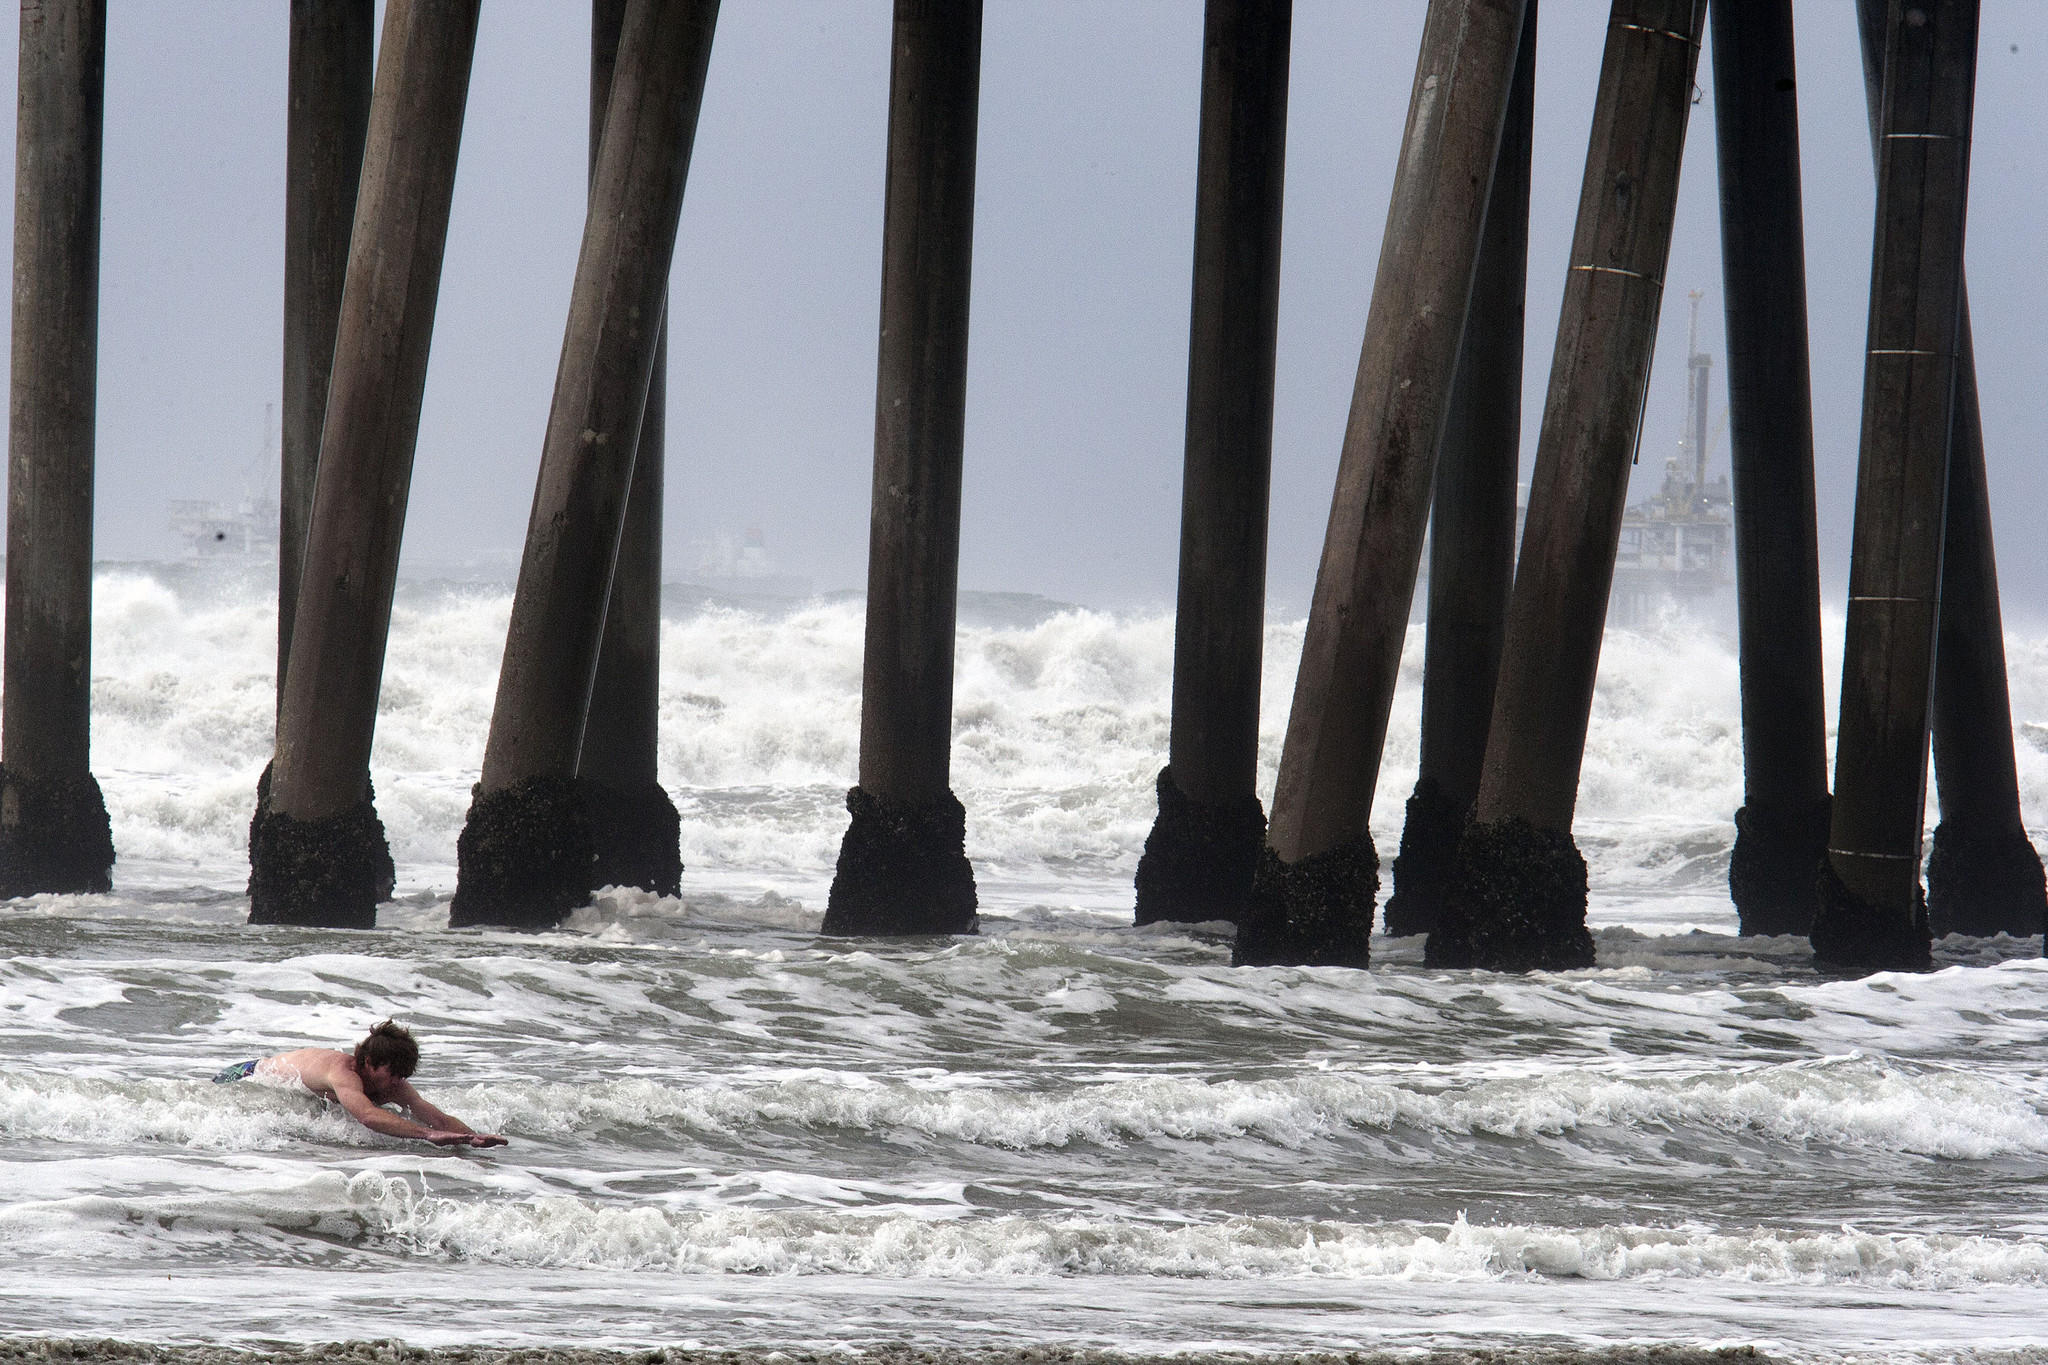 A man swims in the surf Saturday at Huntington Beach. A new study suggests a three-day waiting period after rainfall is not long enough to protect ocean swimmers and surfers from pathogens swept into the water.